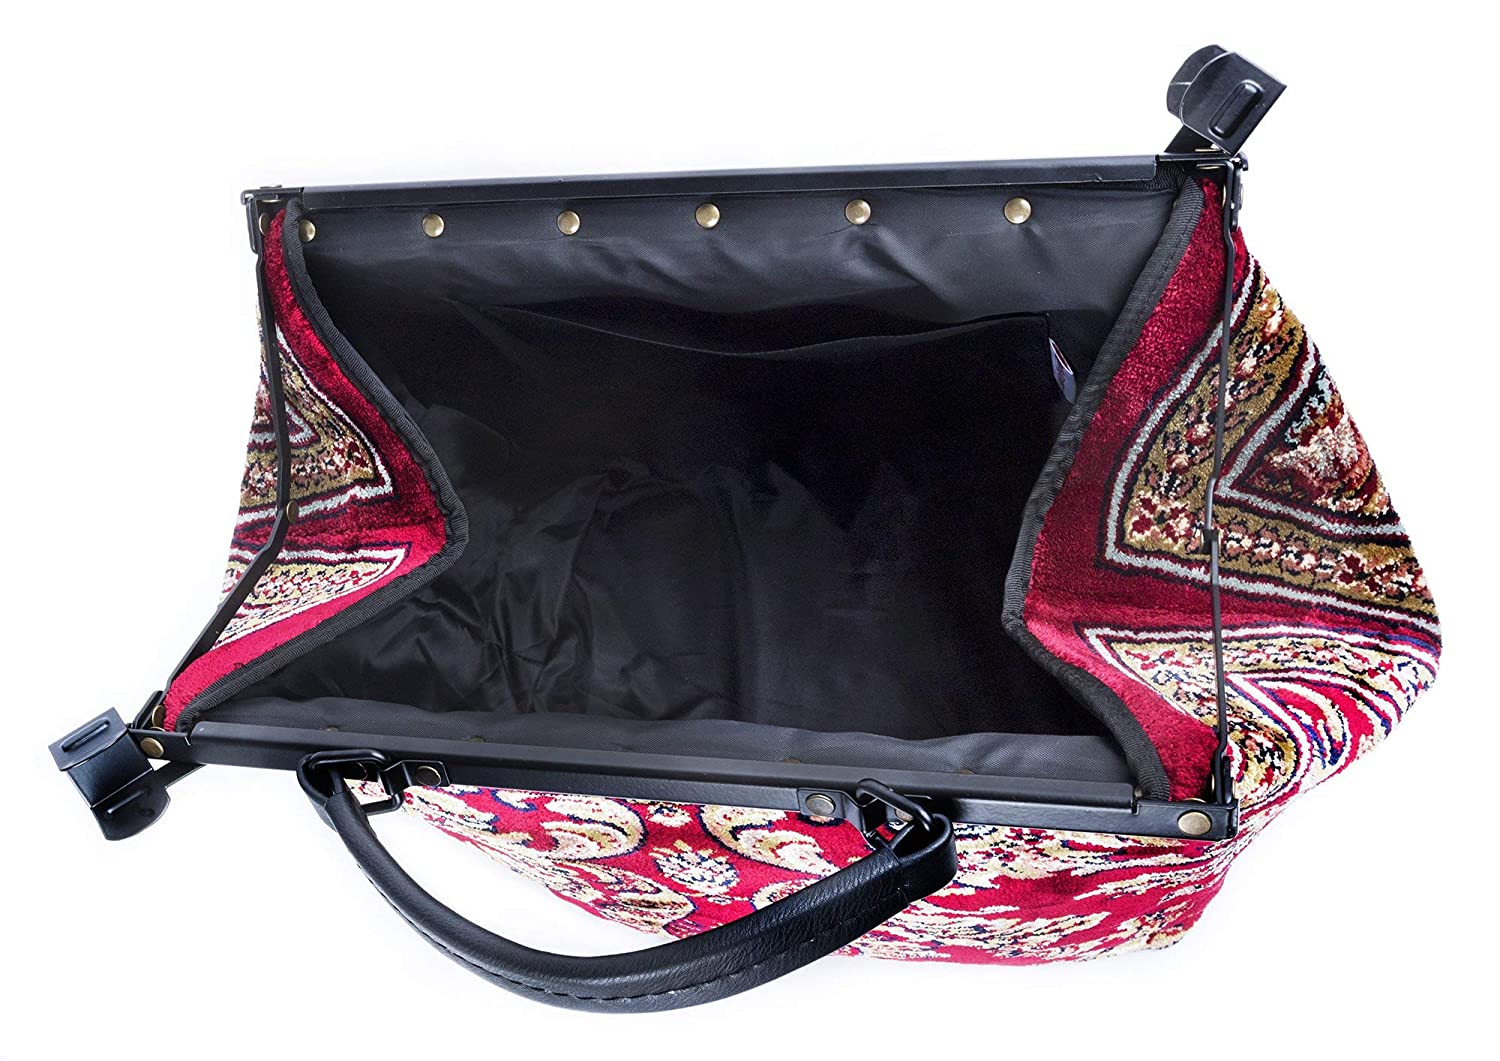 Carpet Bag Sac Voyage Blossom Red Magical Mary Poppins